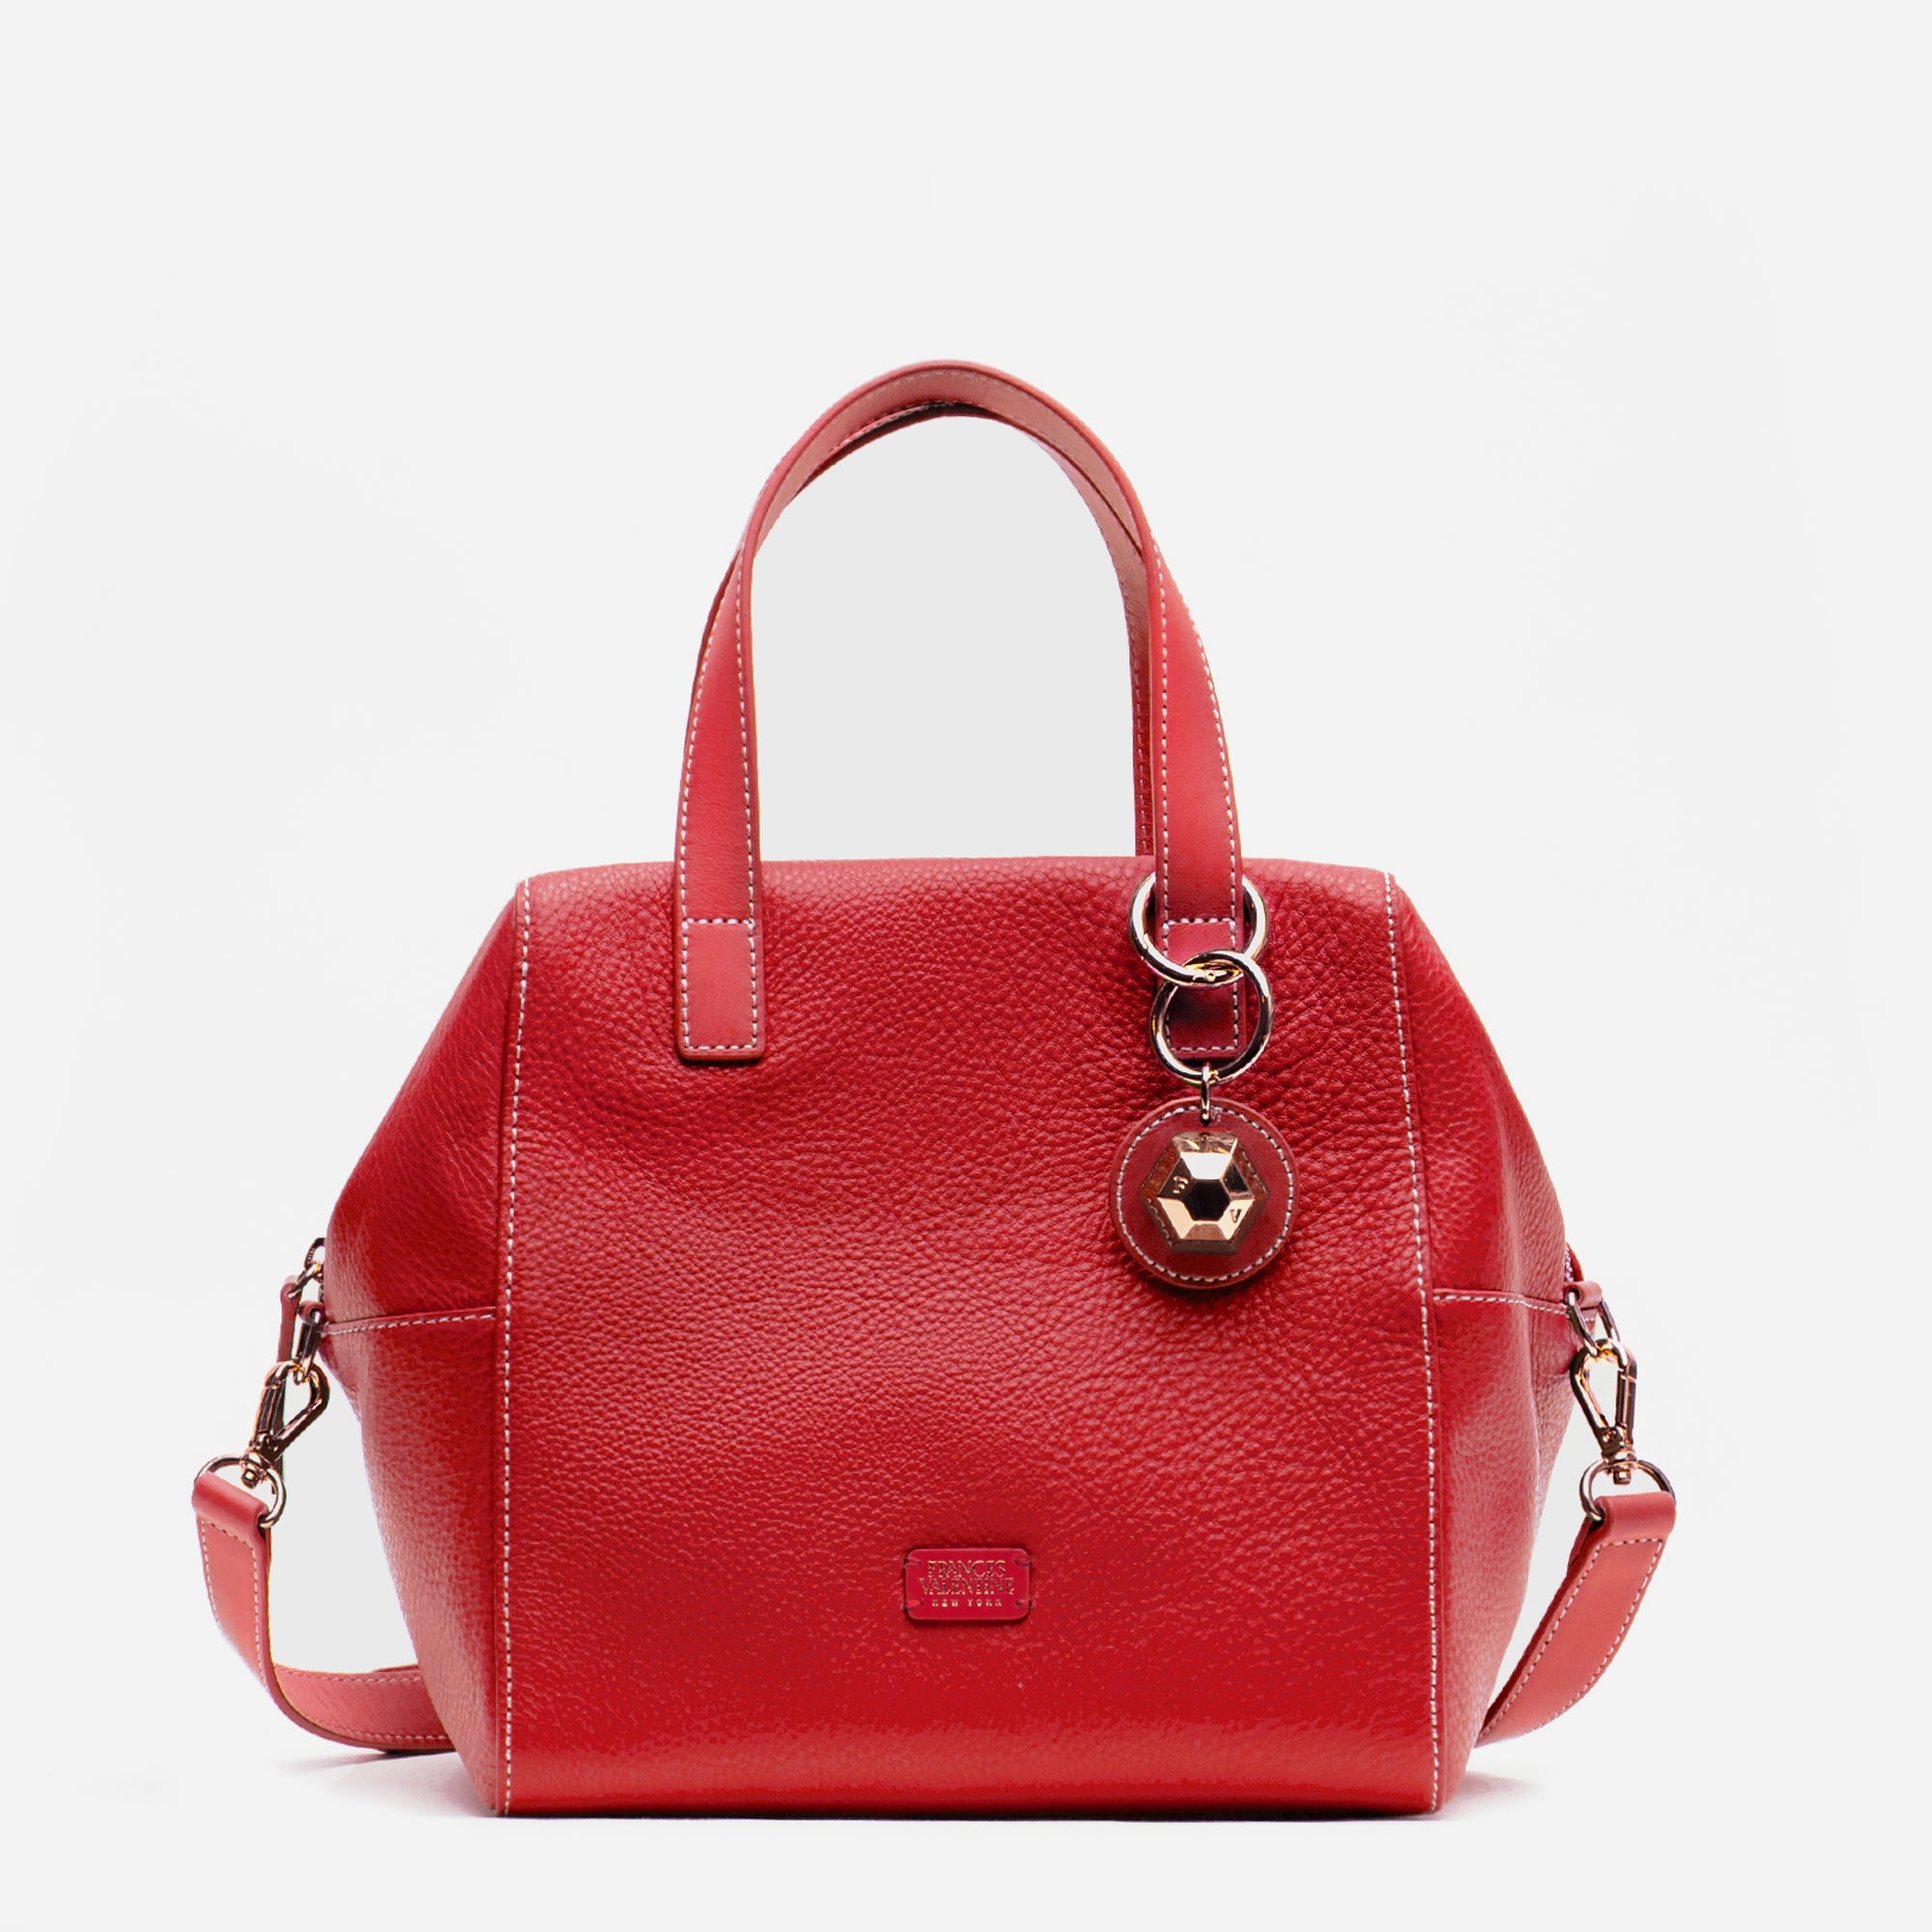 Sabrina Satchel Tumbled Leather Red - Frances Valentine